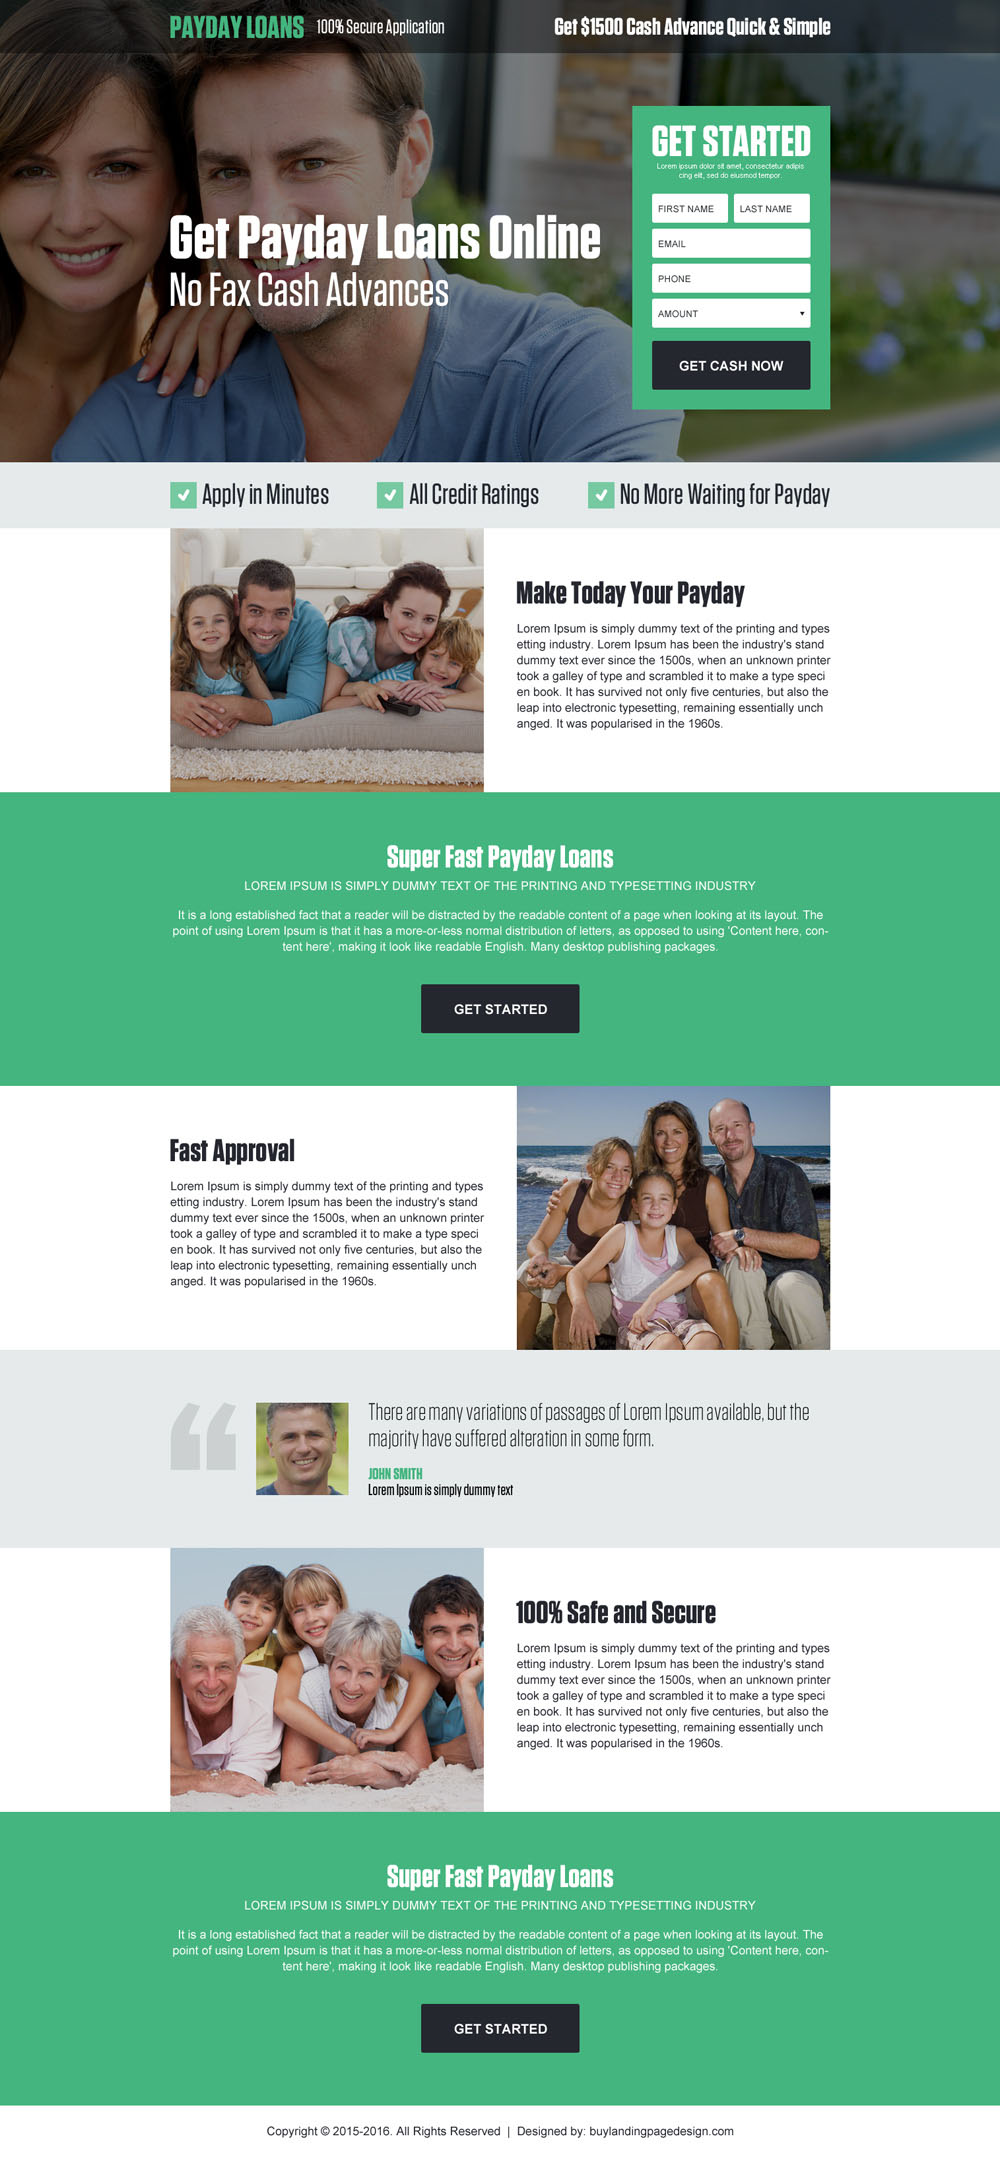 get-payday-loans-online-lead-generation-converting-landing-page-design-026